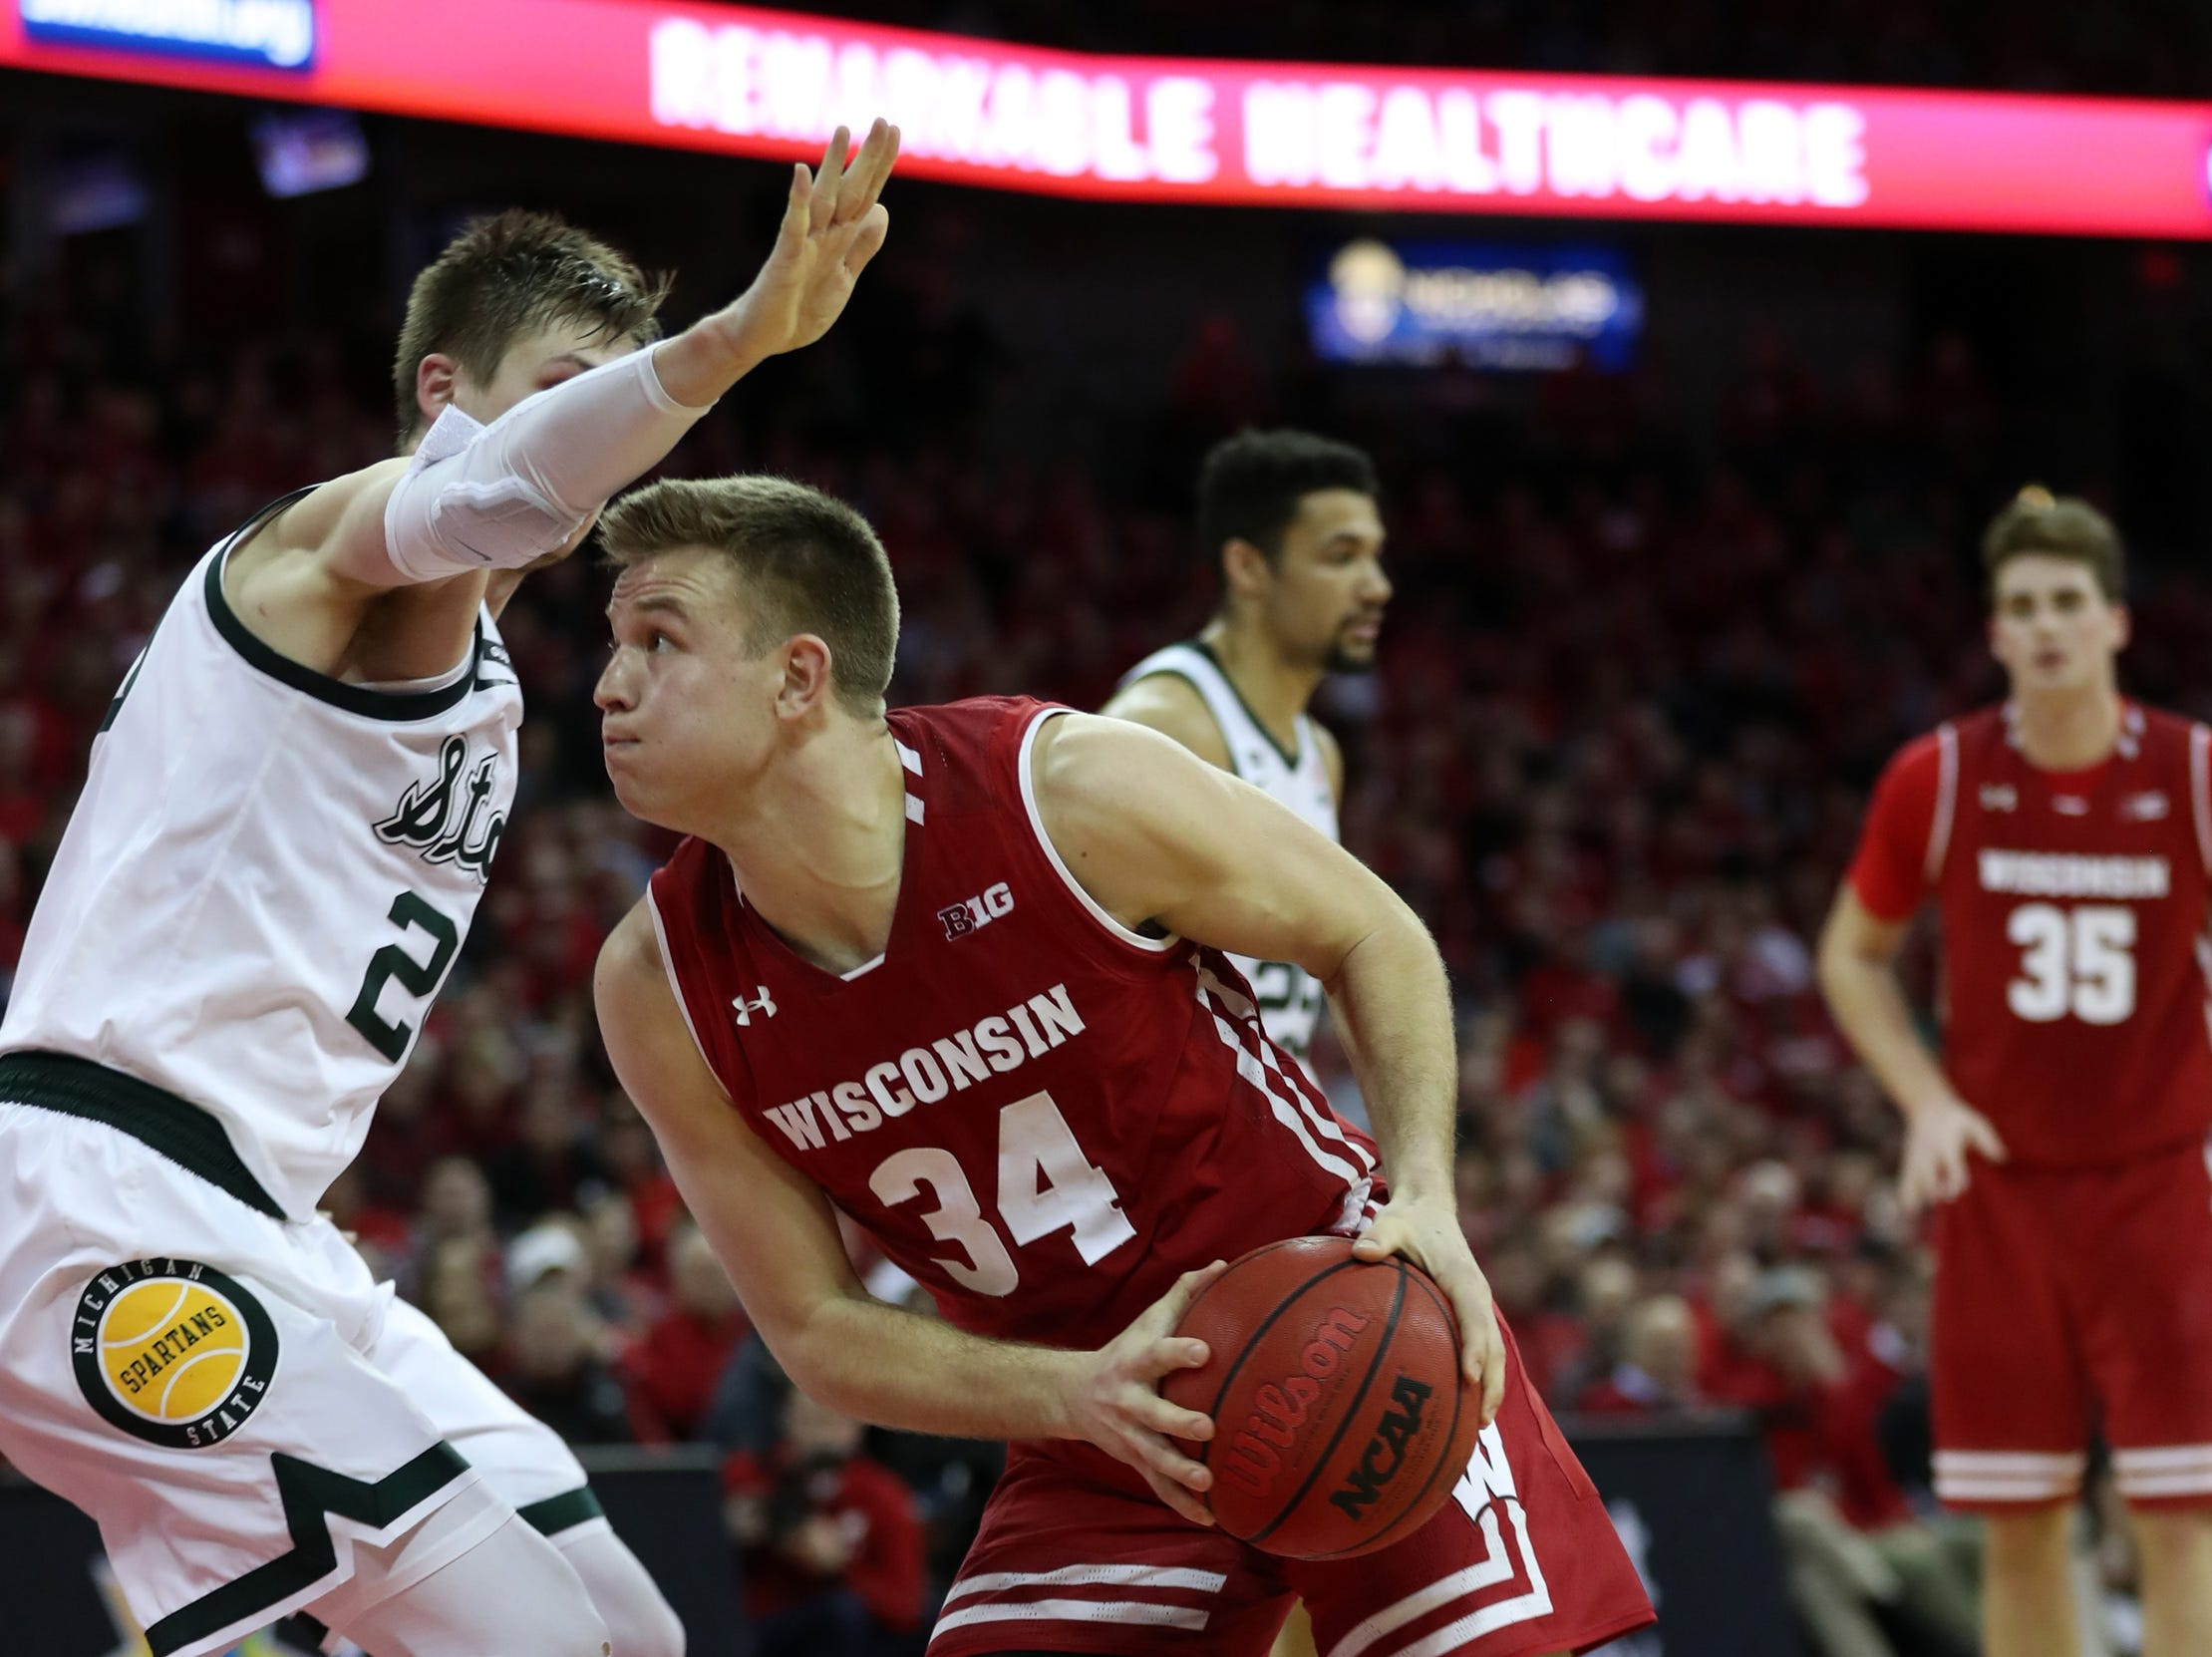 Wisconsin Badgers guard Brad Davison (34) controls the ball as Michigan State Spartans guard Matt McQuaid (left) defends during the second half at the Kohl Center.